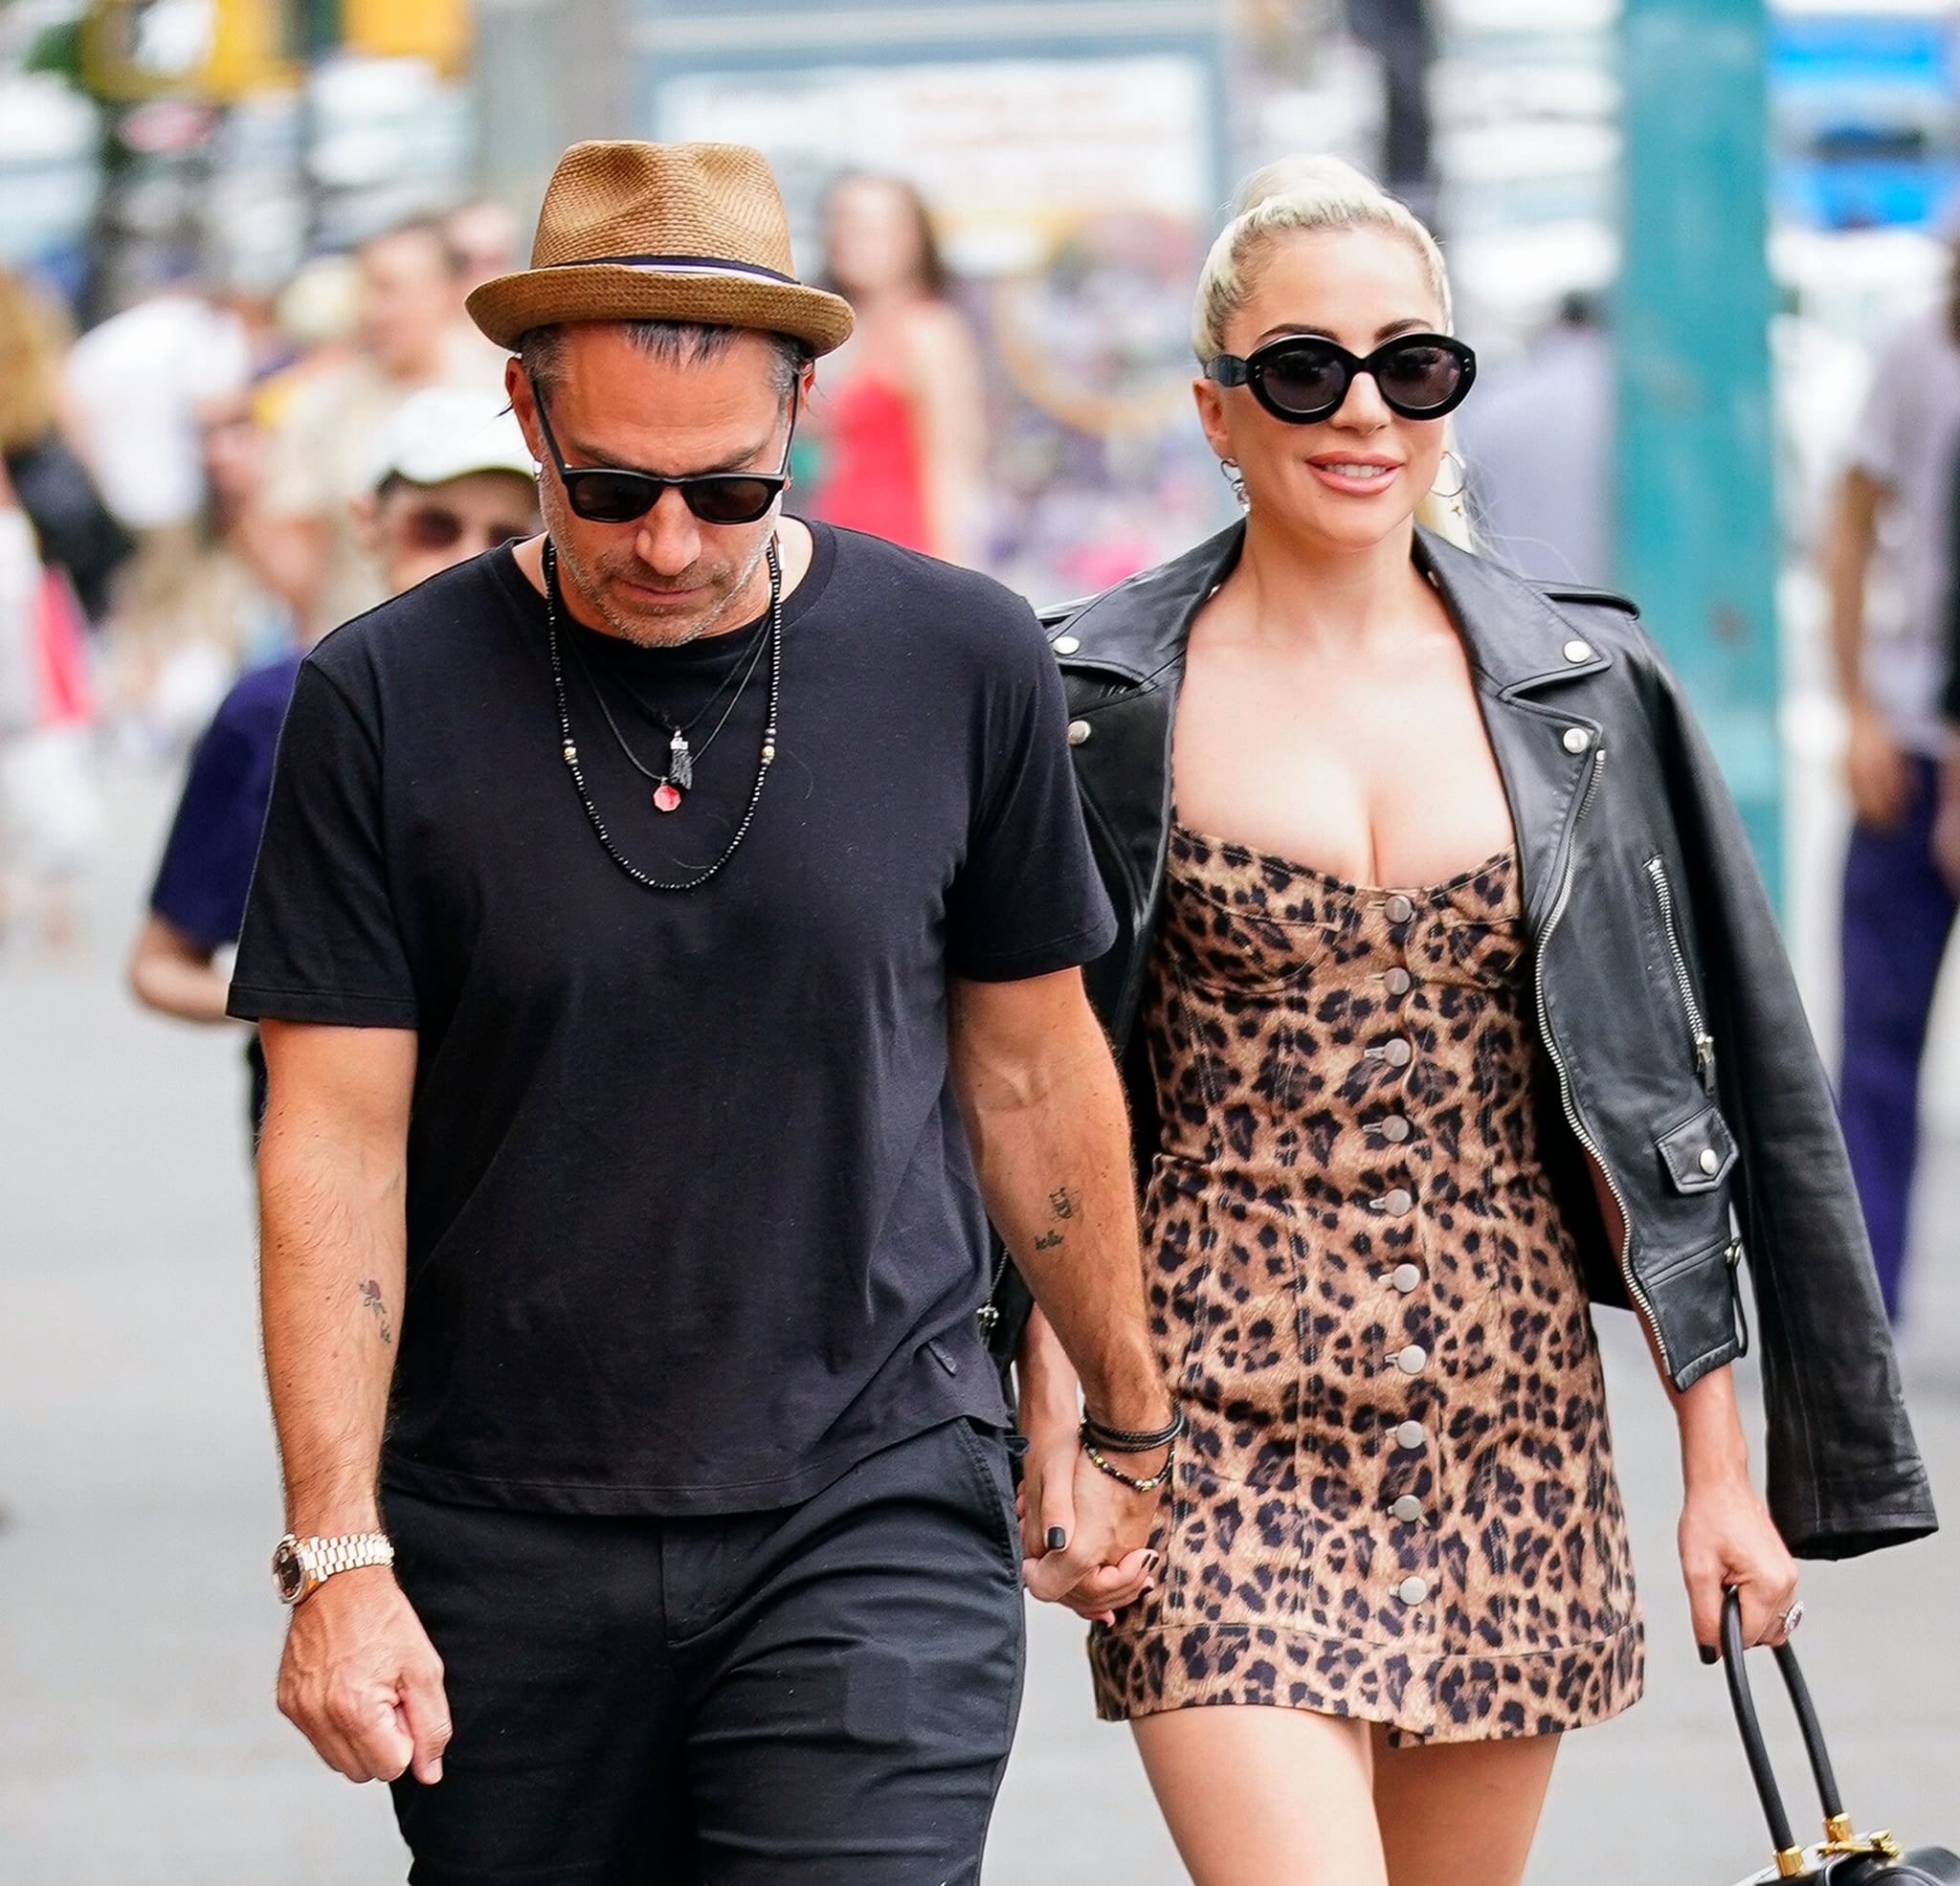 NEW YORK, NY - JUNE 28:  Lady Gaga and Christian Carino walk to her studio on June 28, 2018 in New York City.  (Photo by Gotham/GC Images)